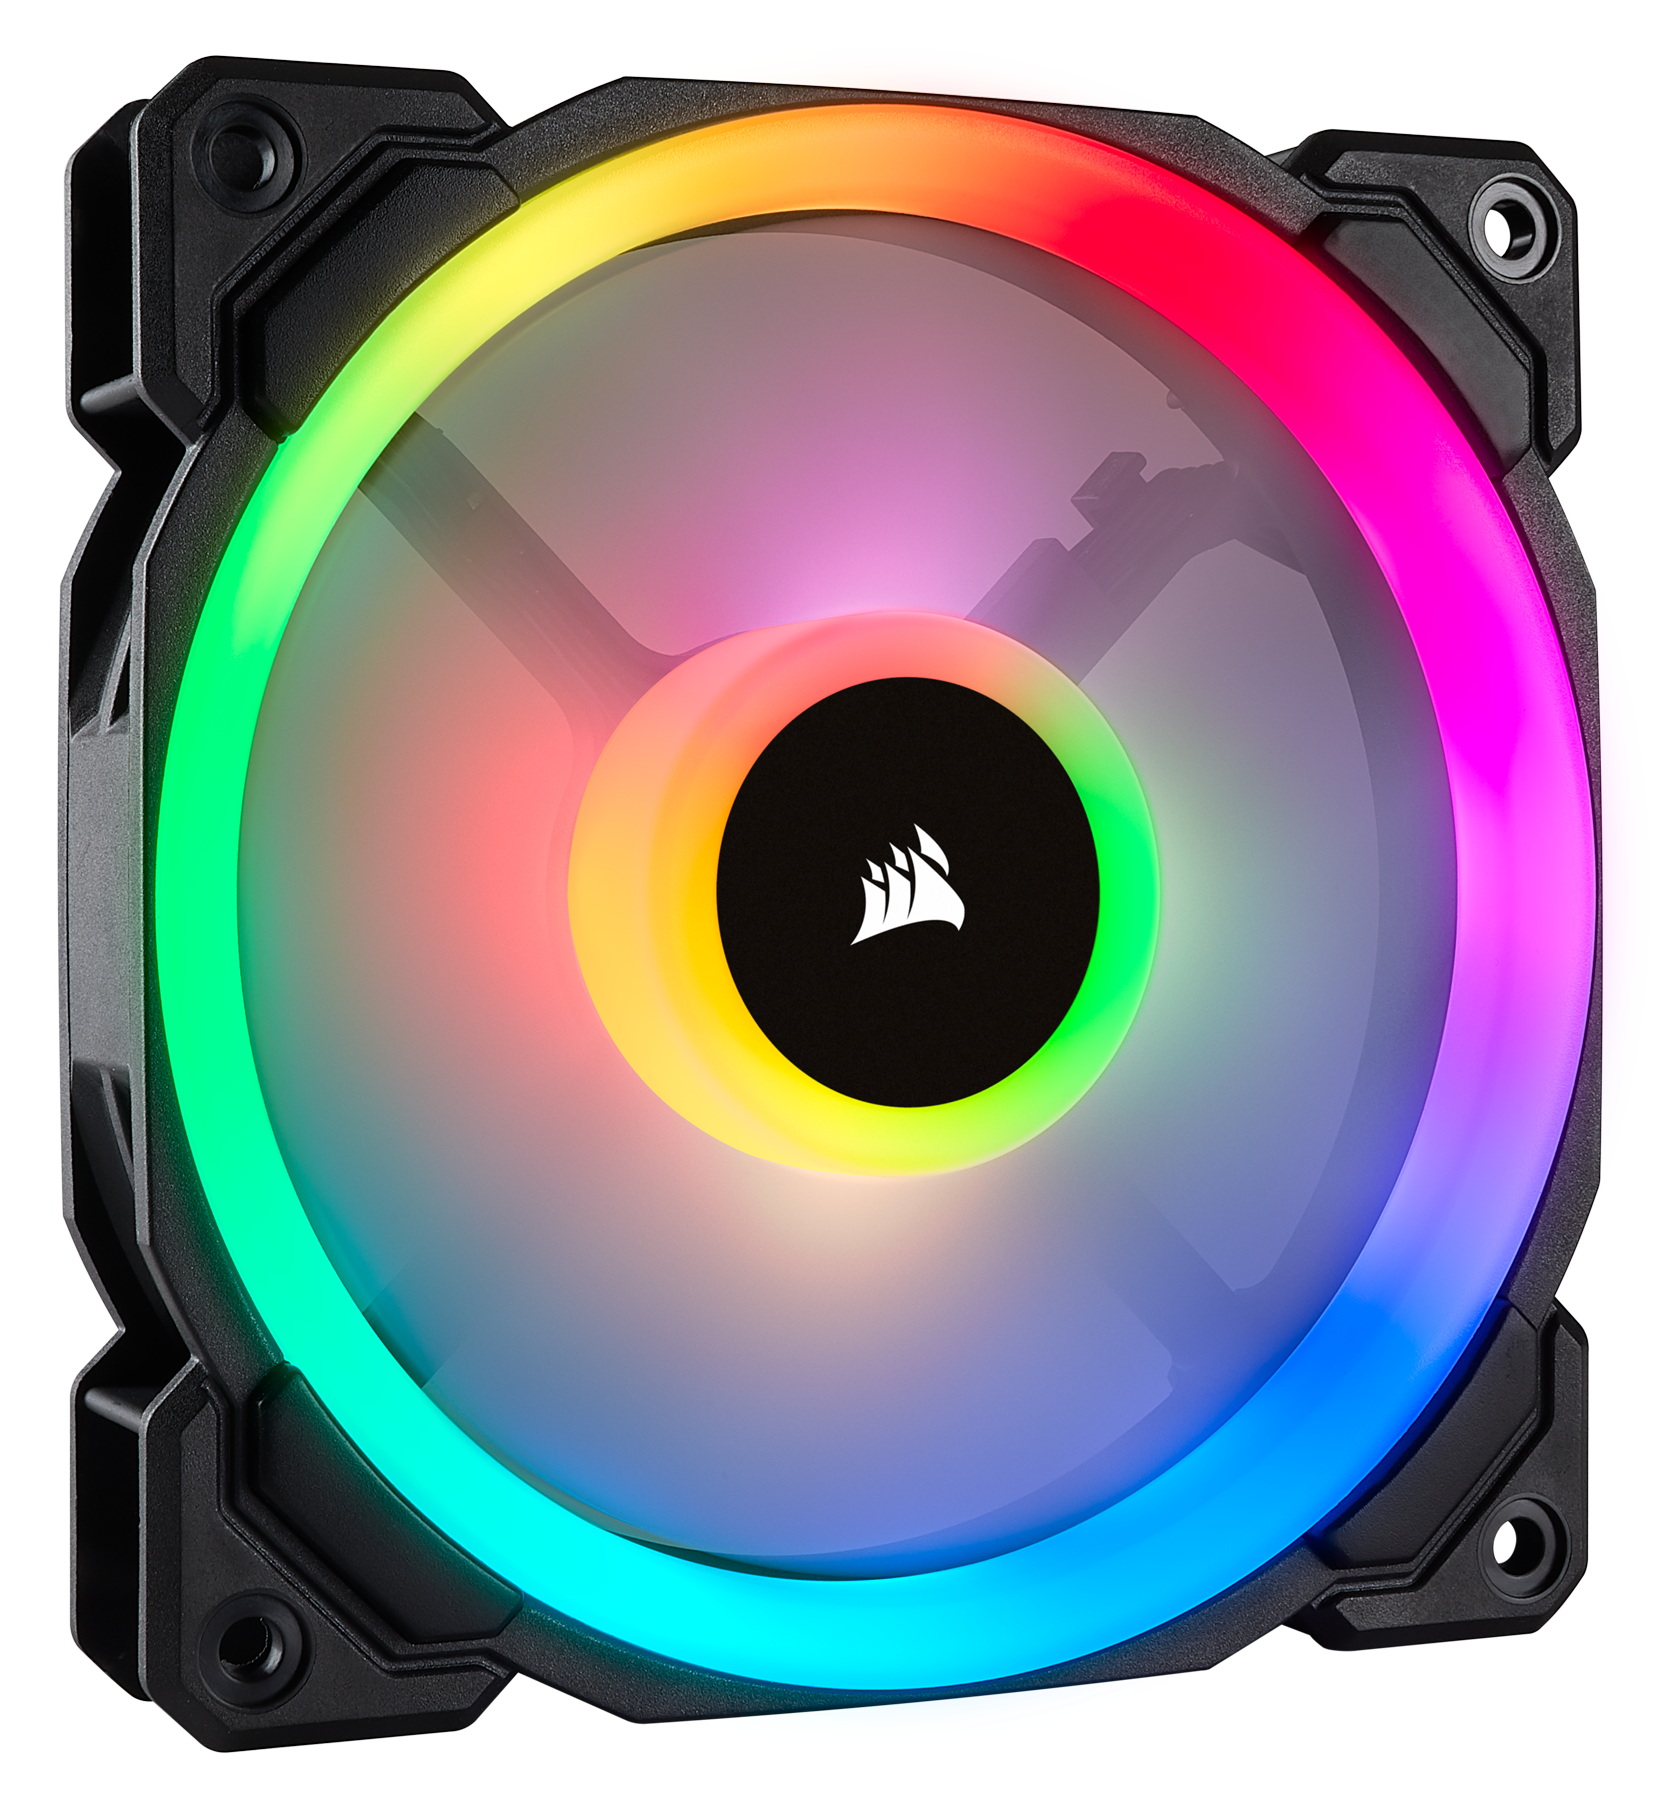 Ll120 Rgb 120mm Dual Light Loop Led Pwm Fan 3 Pack With The Tricolor Leds Can Be Mounted In Three Ways Through Made For Those Seeking Excellent Airflow Quiet Operation And Powerful Lighting Corsair Puts Your Pc Back